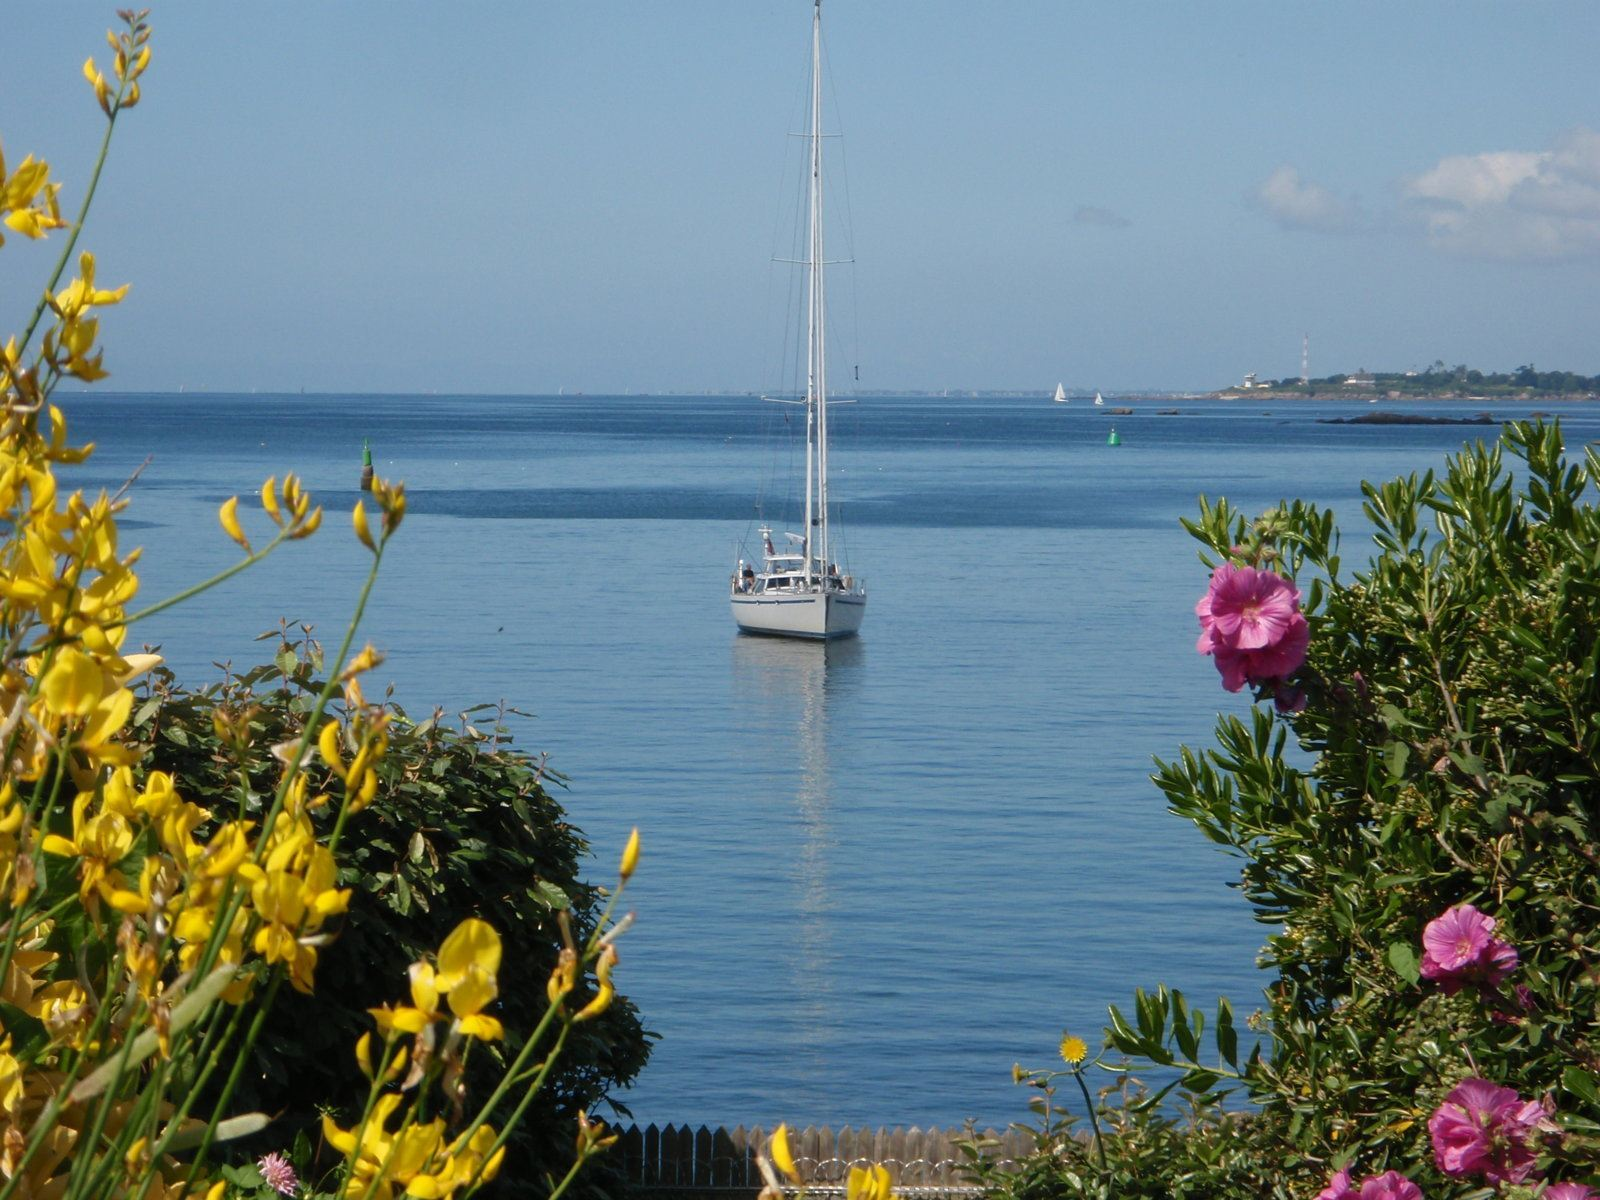 sales property at Concarneau. Property with seaview and swimmong pool.